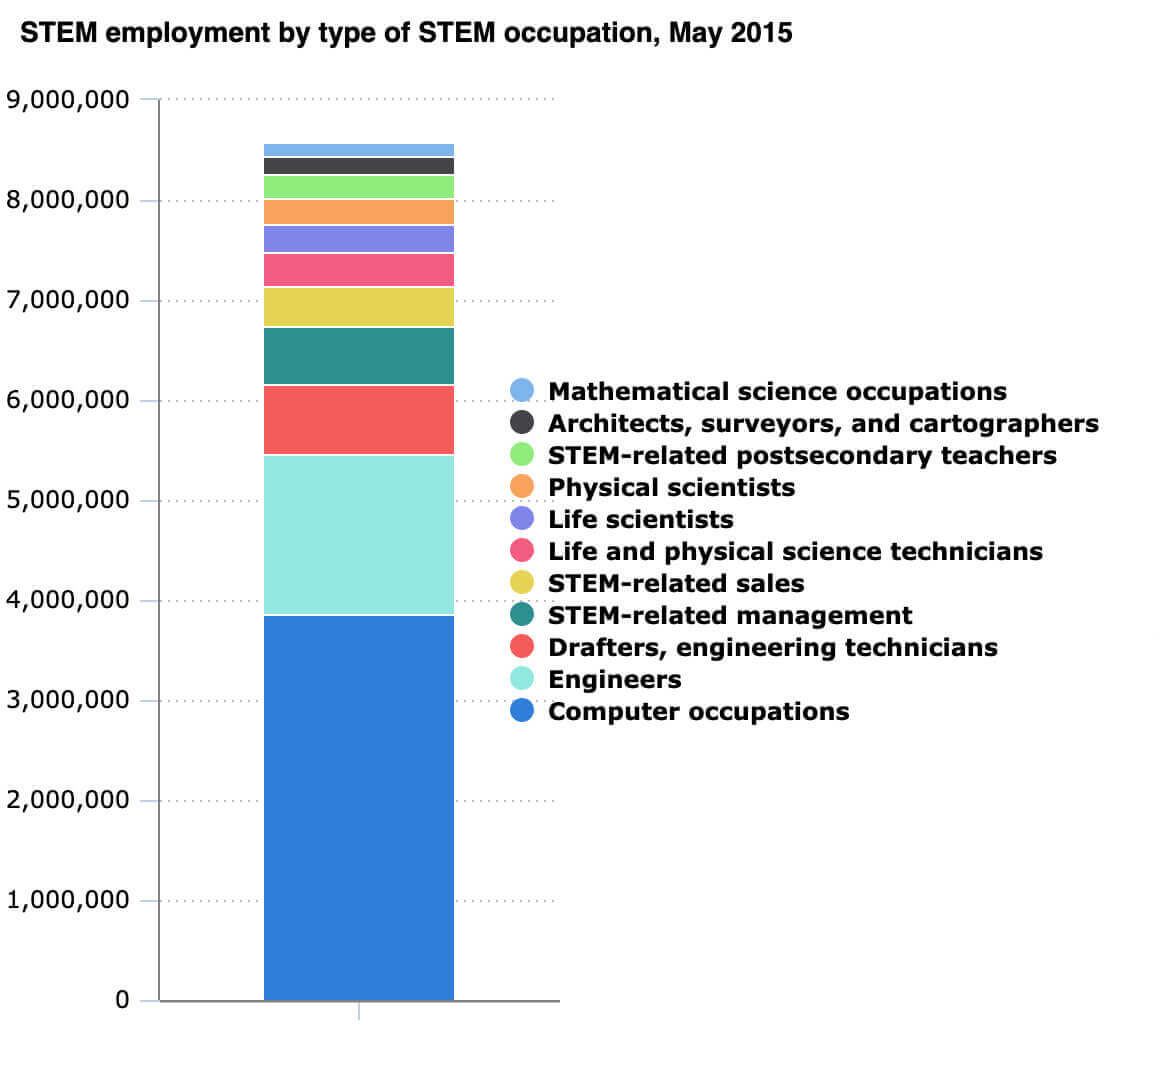 Chart on STEM employment by STEM occupation